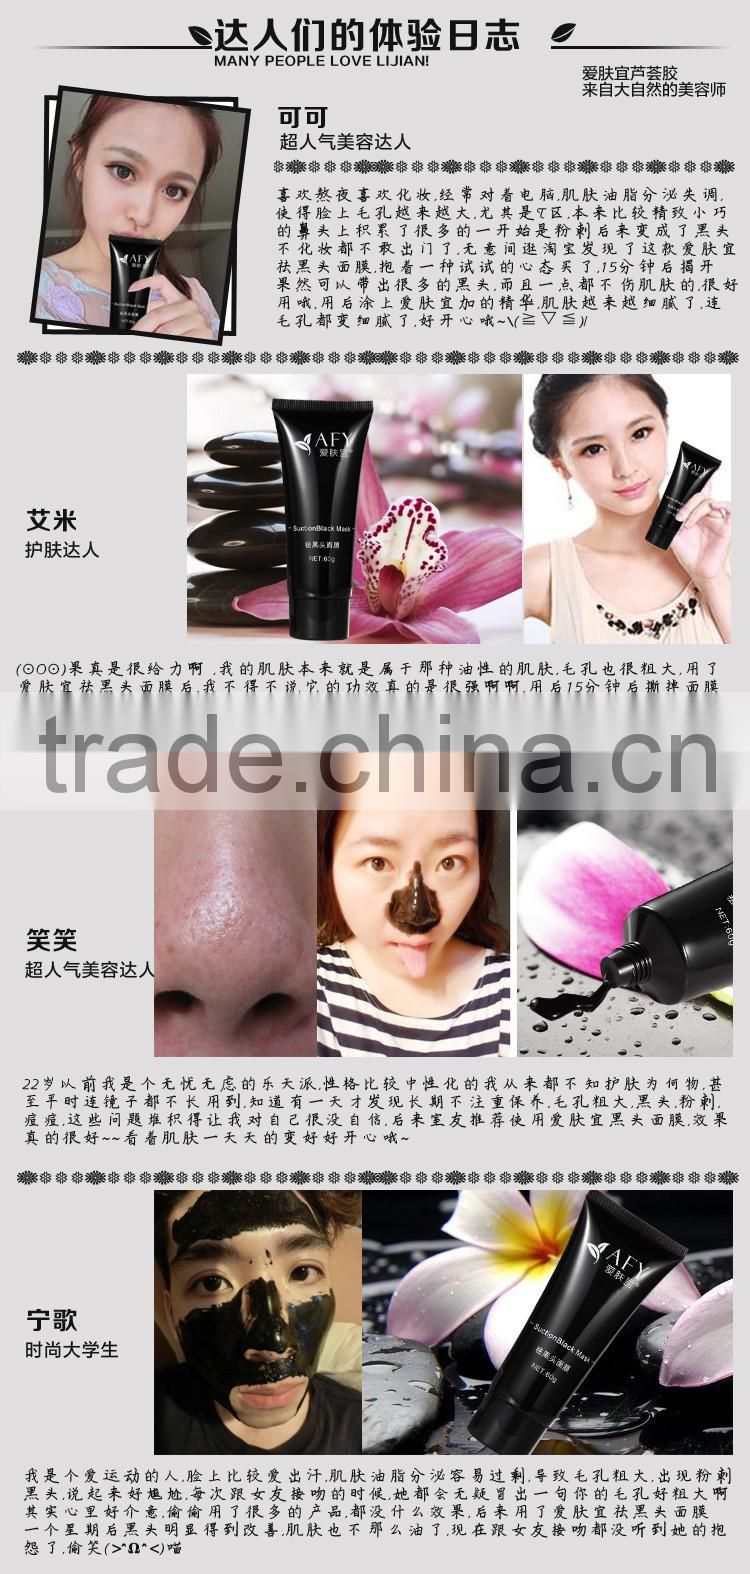 AFY facial black mask and nose mask Blackhead Remover Skin Cleaning